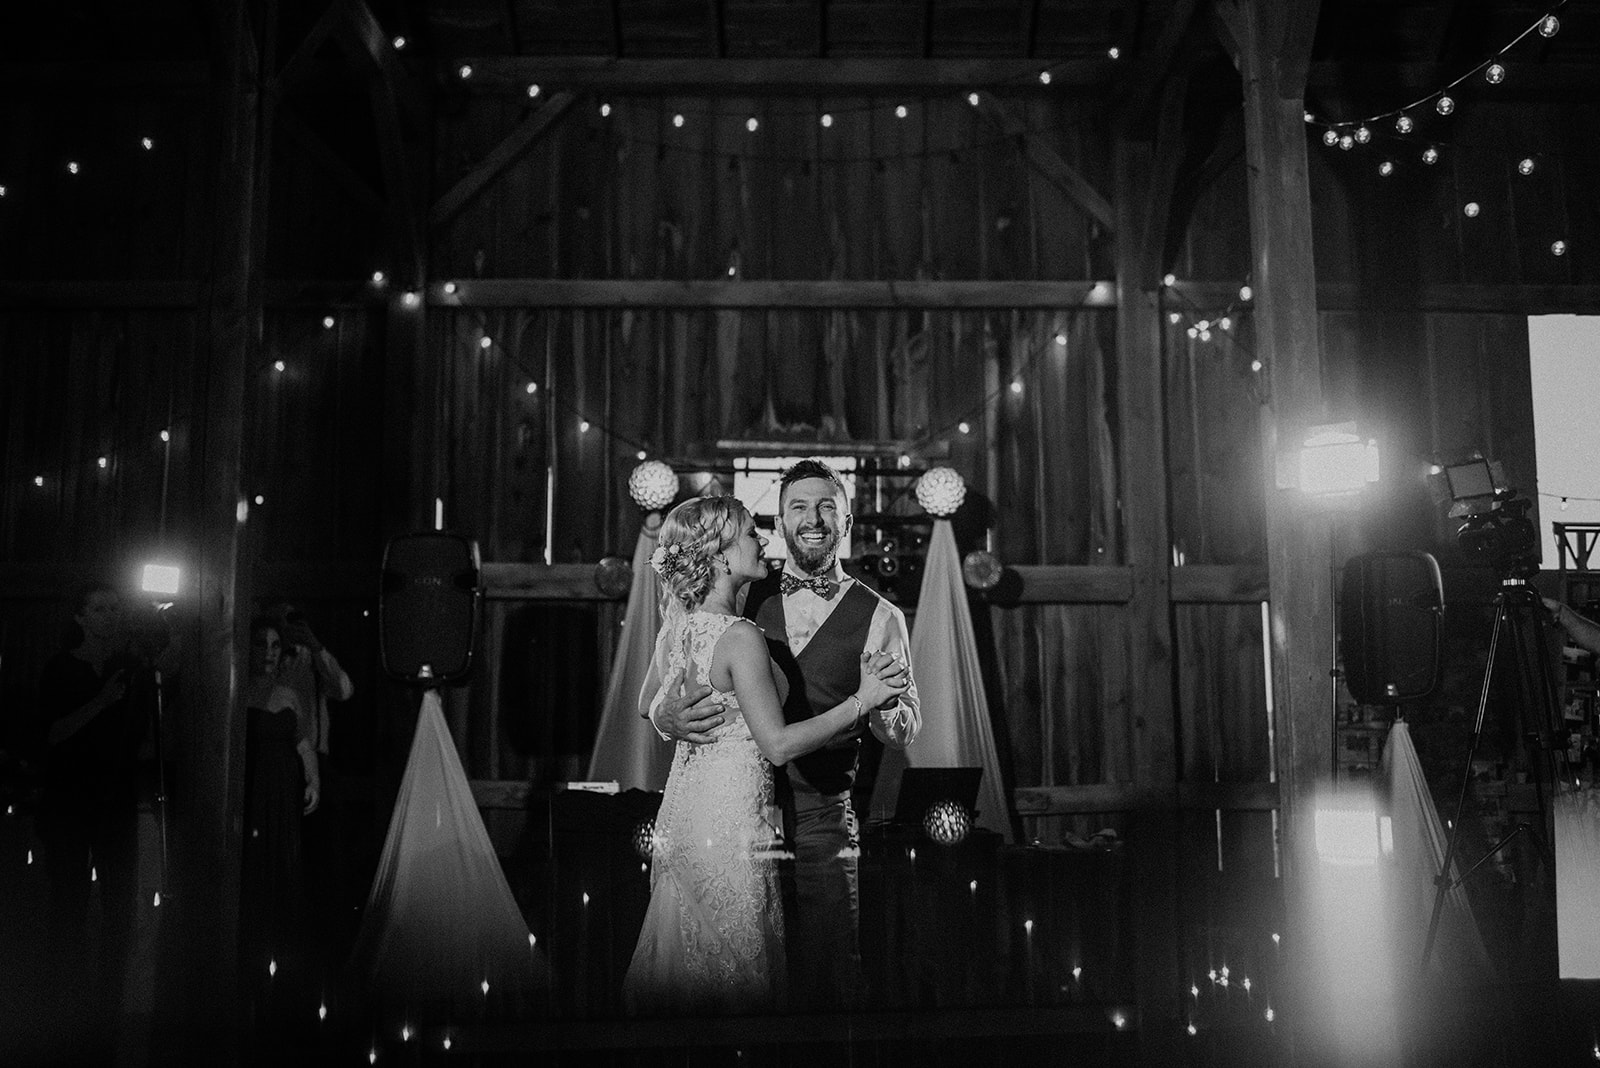 overthevineswisconsinwedding_1275.jpg